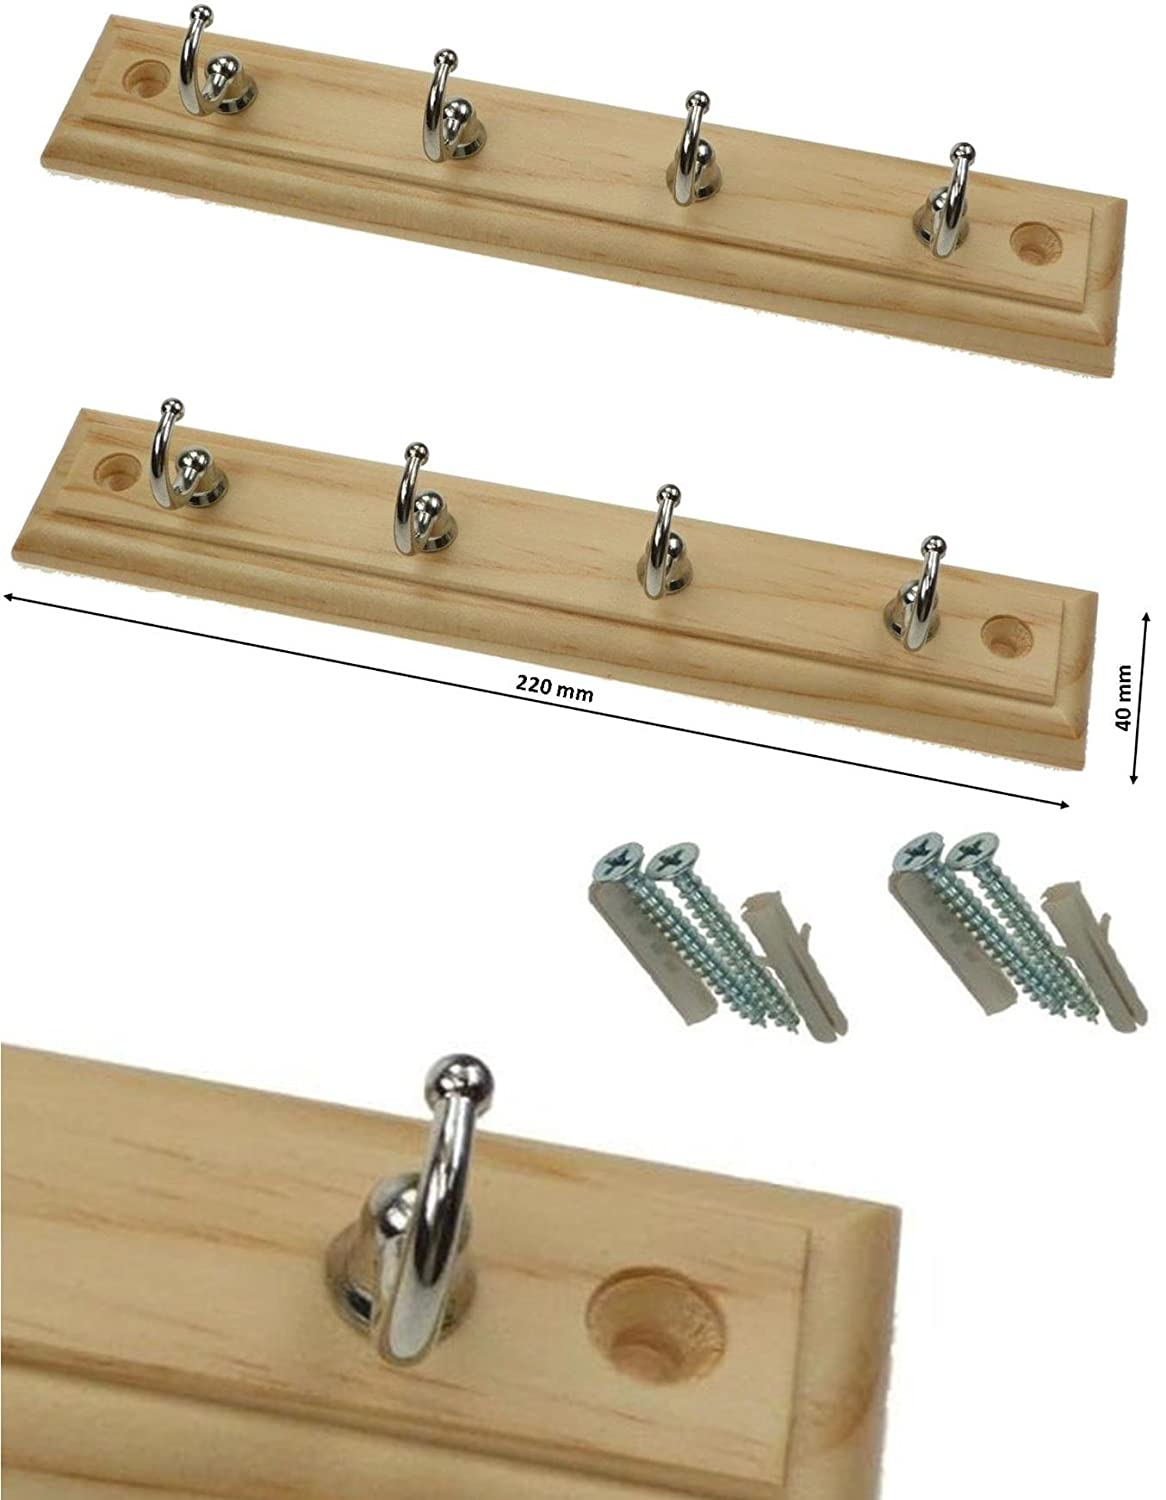 2 X 4 HOOK HOOKS DOOR WALL SMALL WOODEN PINE PLAQUE COAT RACK STAND HANGER ogb